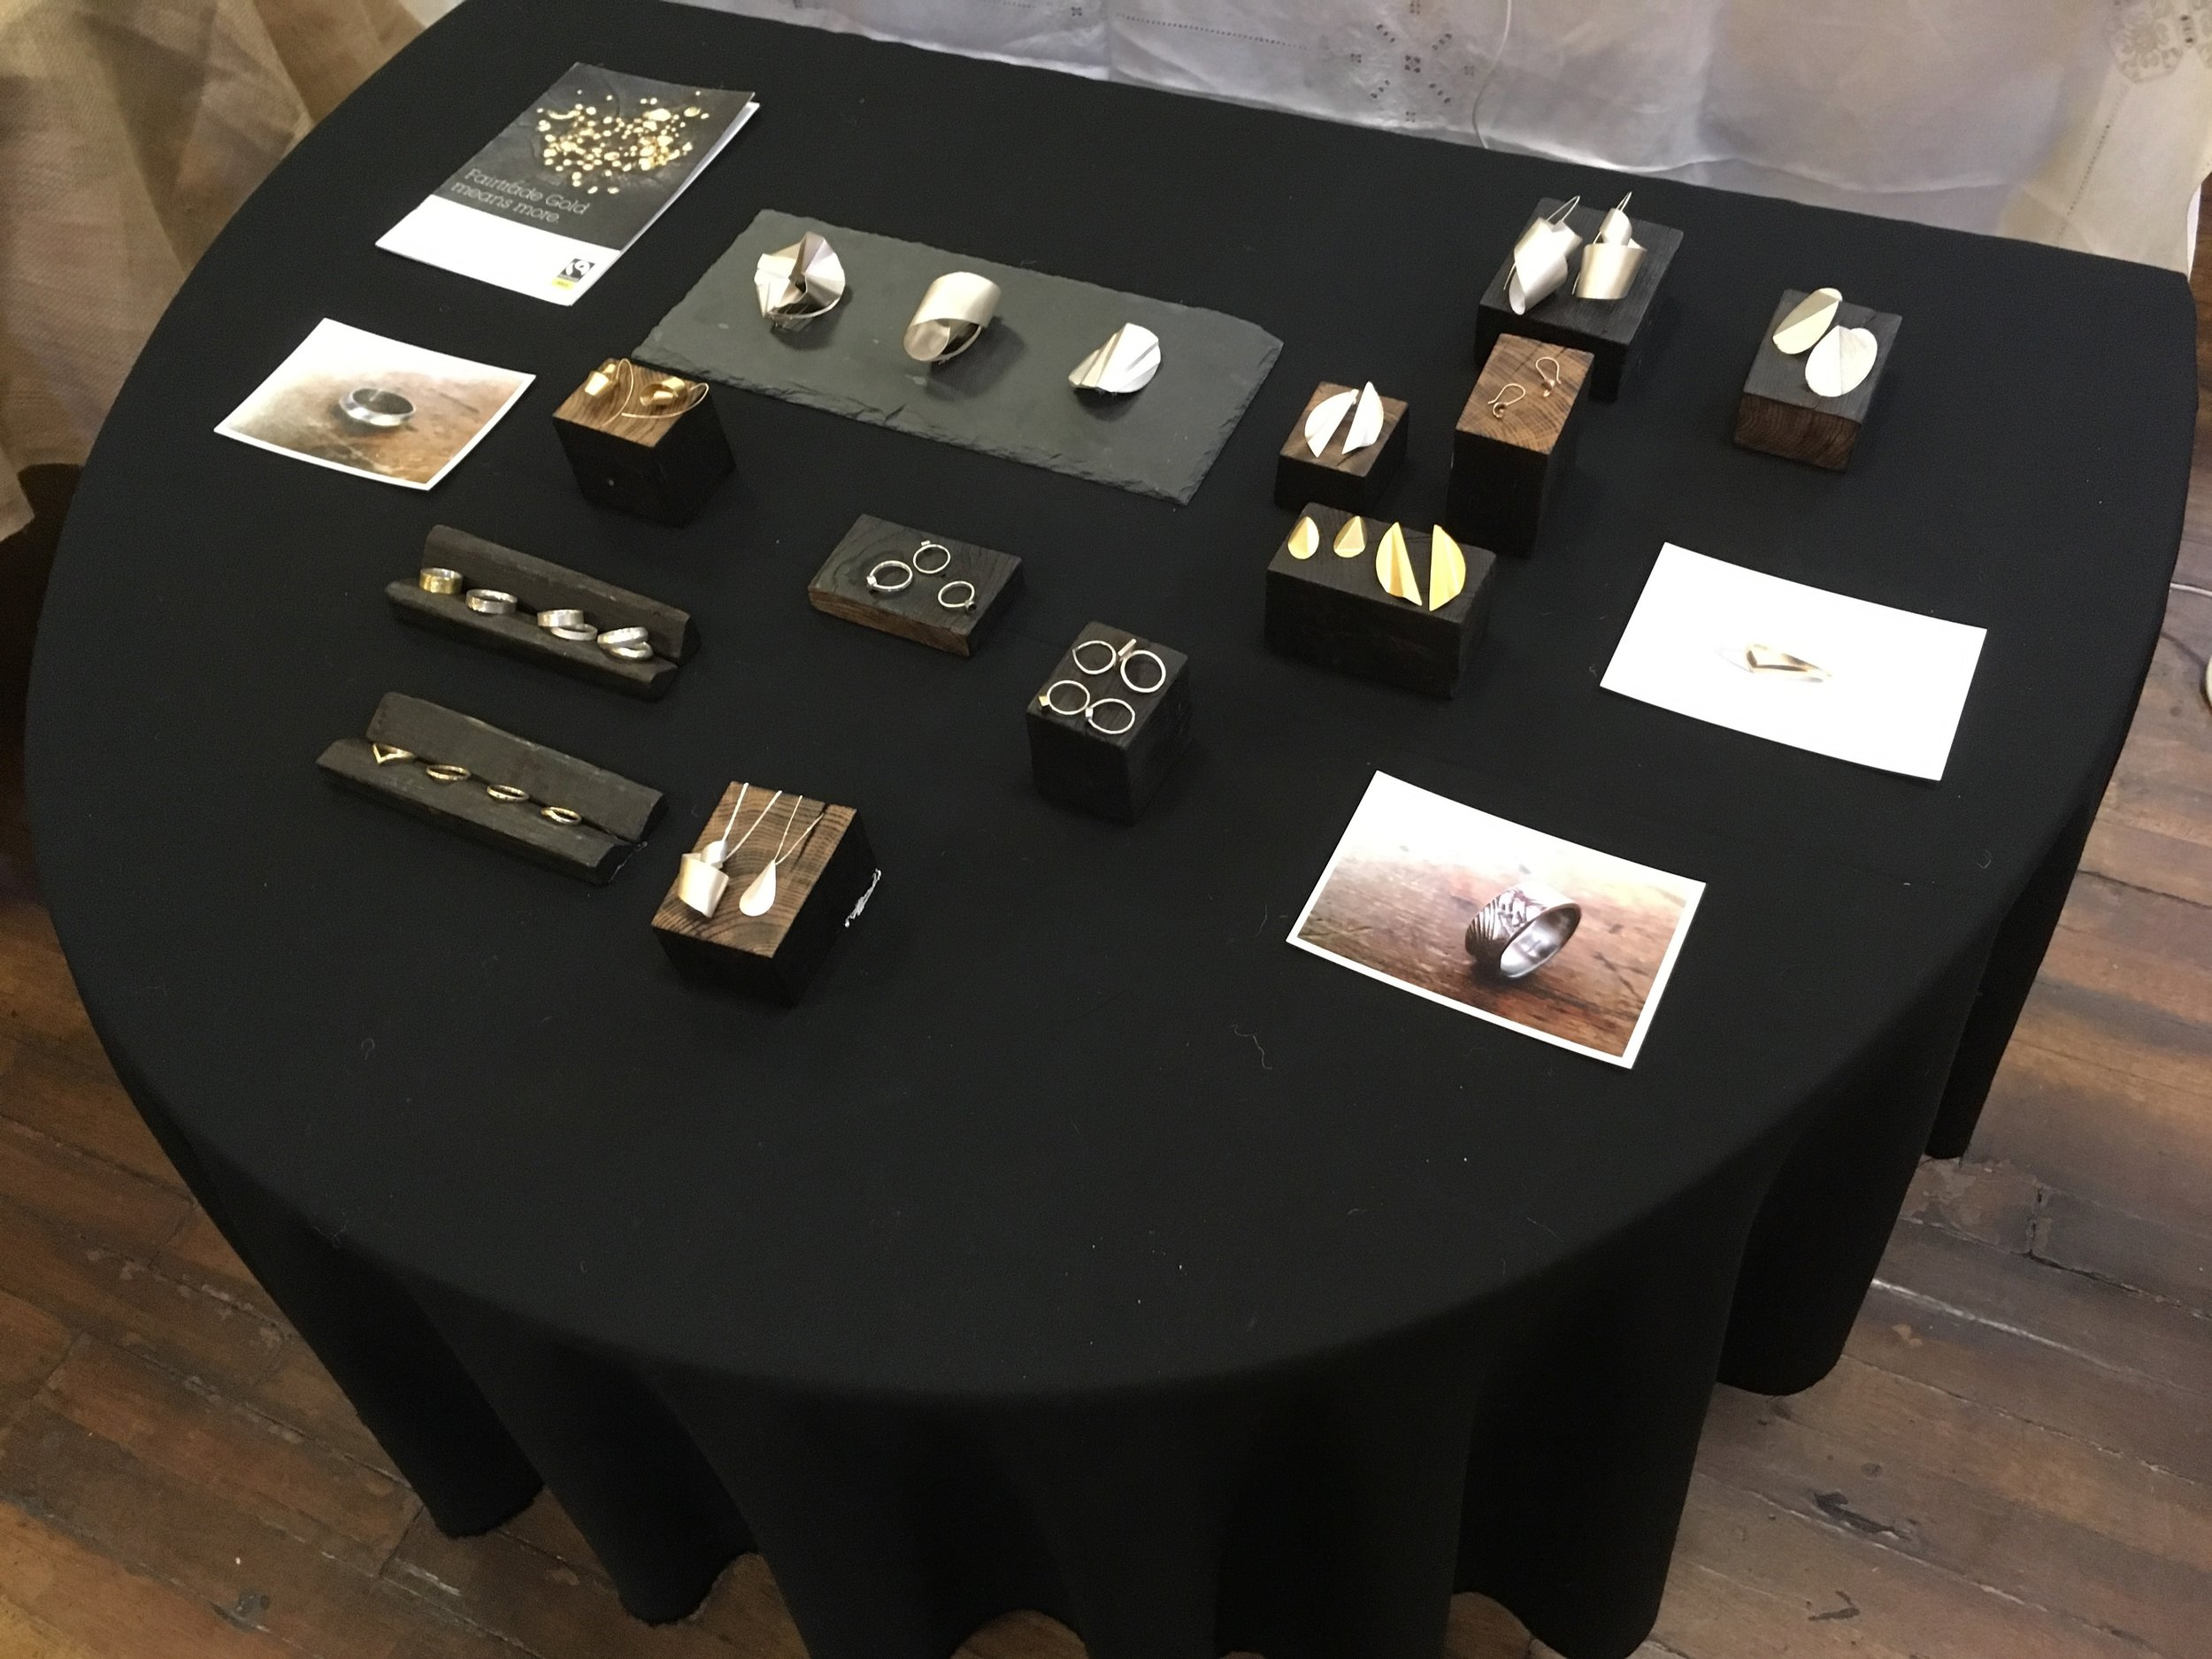 Vicki Pearce  had some lovely Jewellery pieces on display.